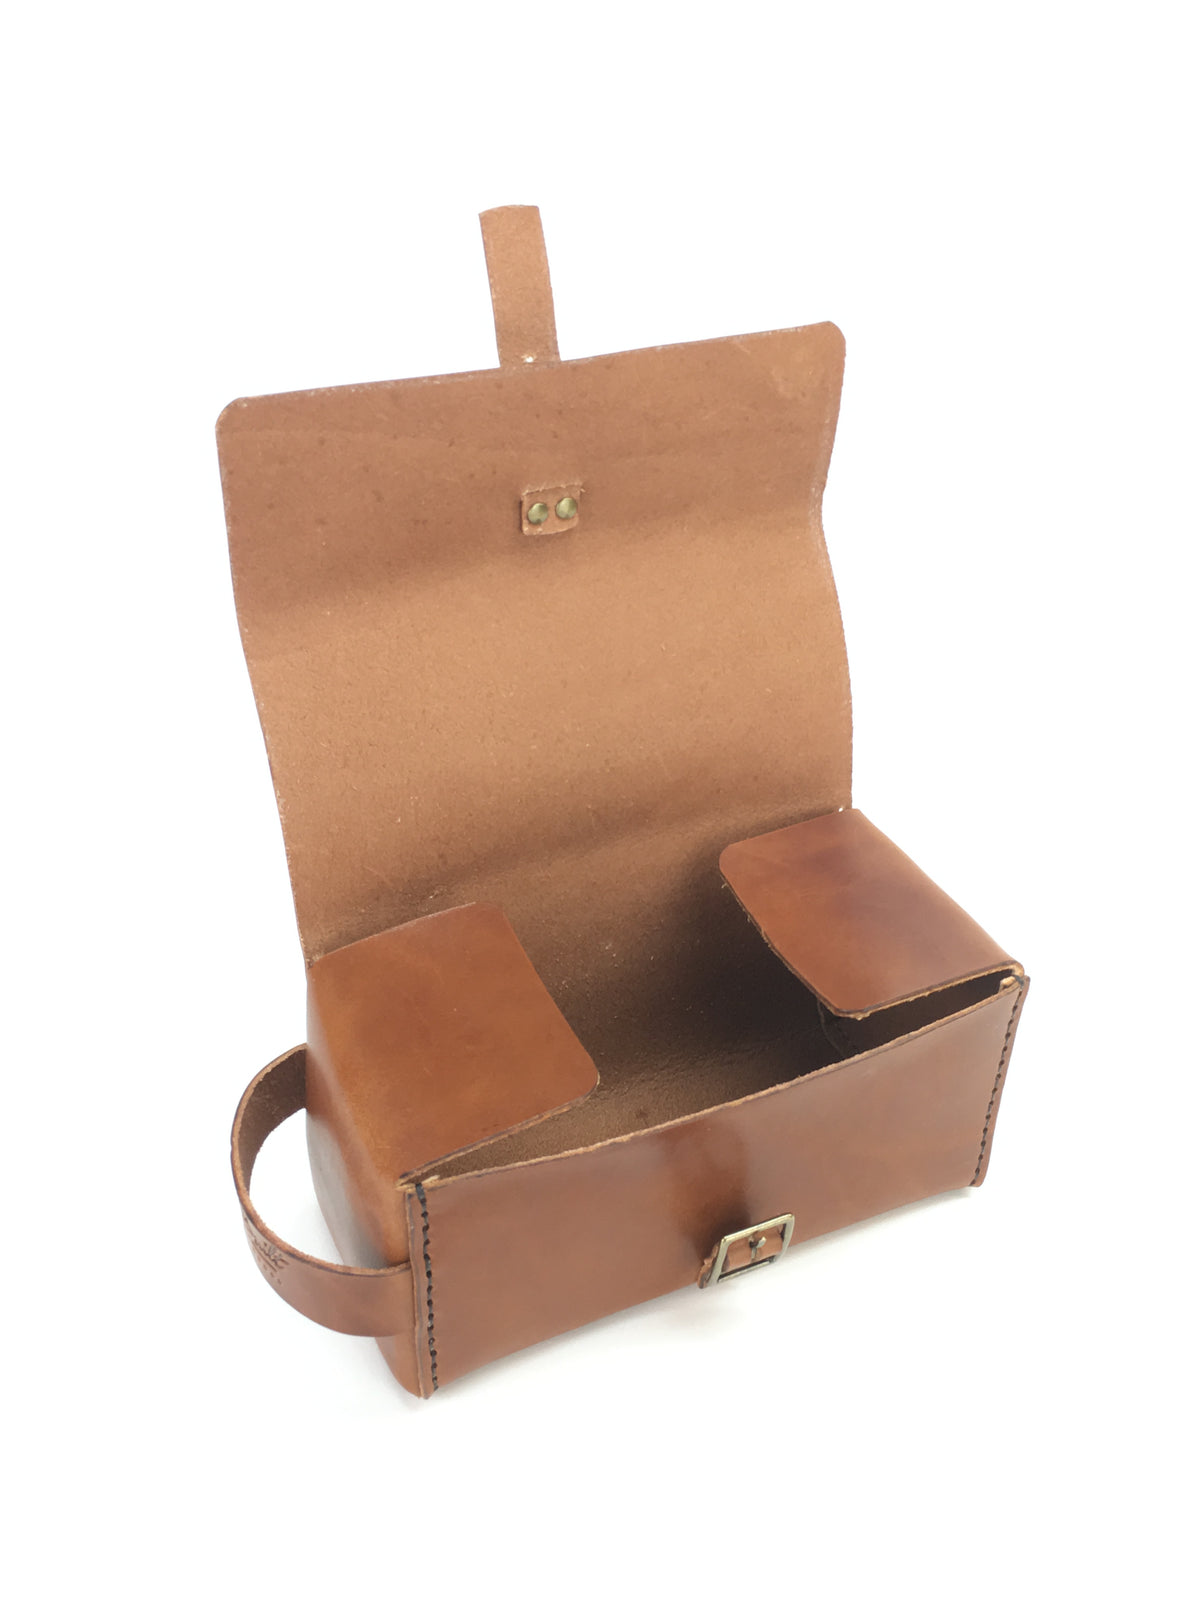 H+B LARGE DOPP KIT | BUCK BROWN LEATHER